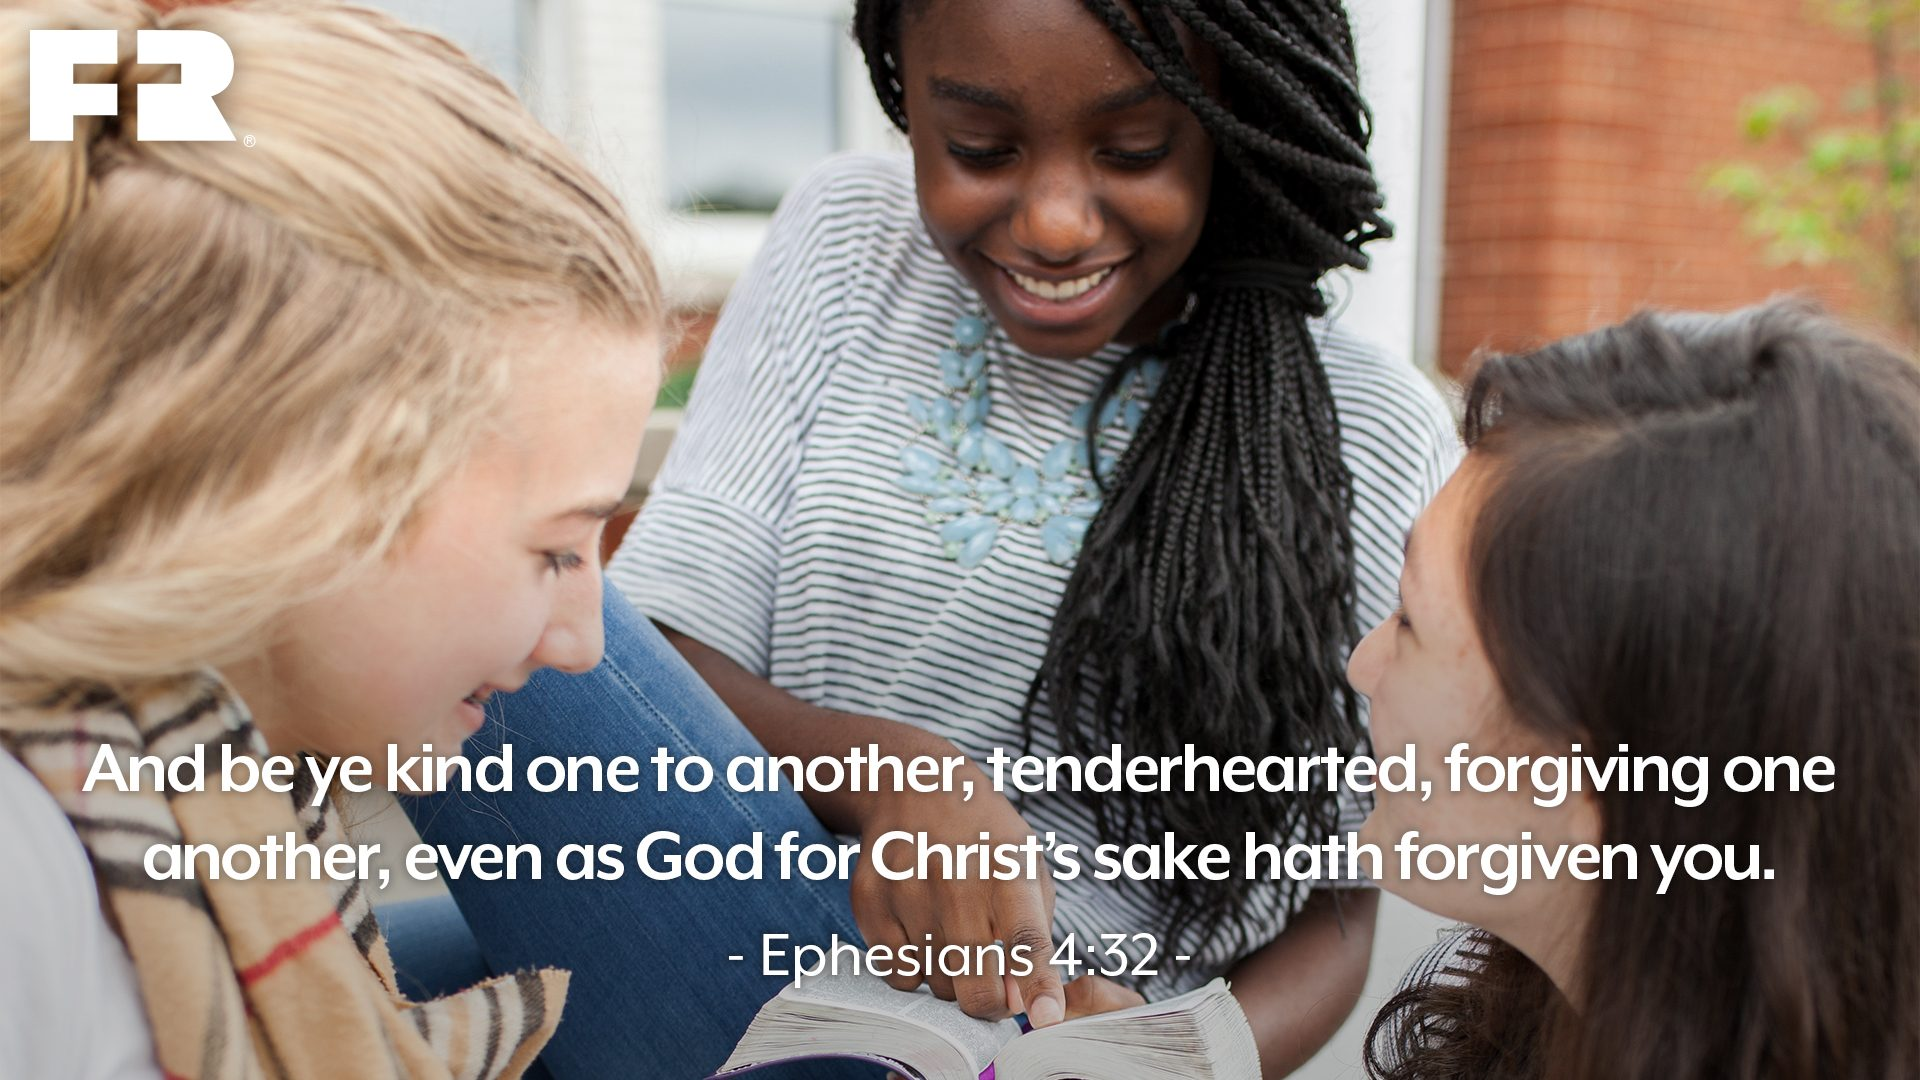 """And be ye kind one to another, tenderhearted, forgiving one another, even as God for Christ's sake hath forgiven you."""